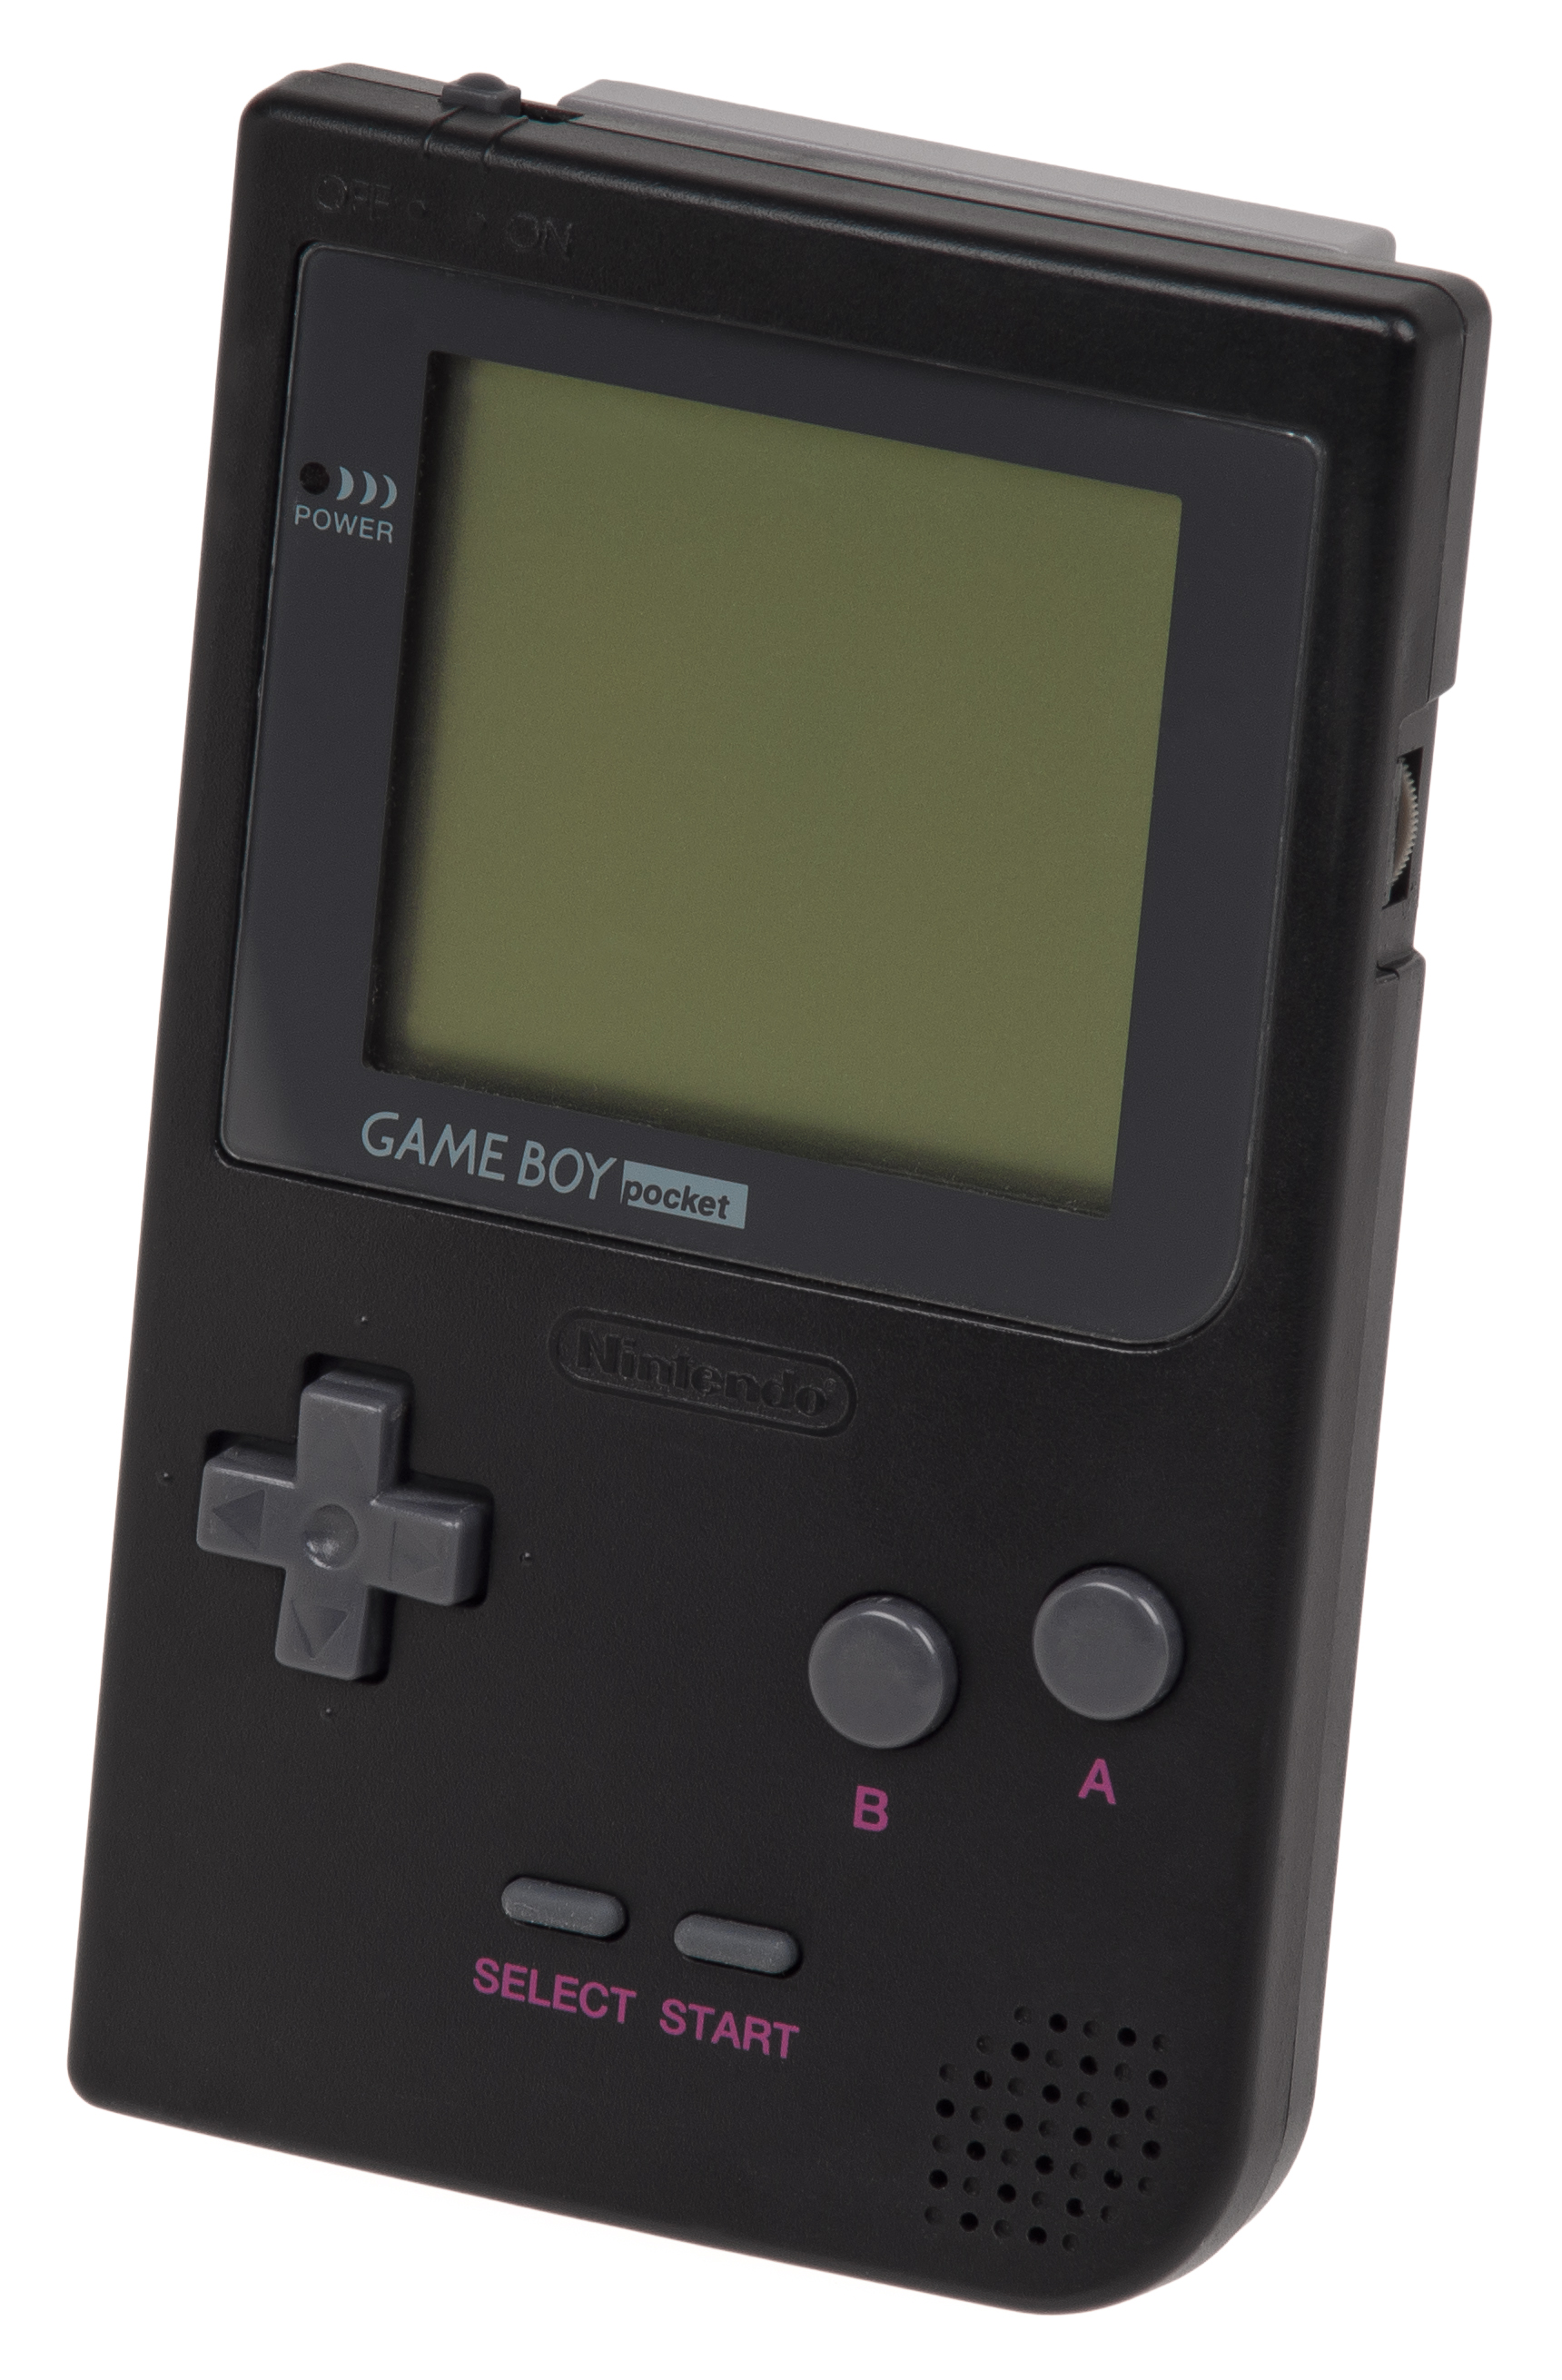 Game-Boy-Pocket-Black.jpg